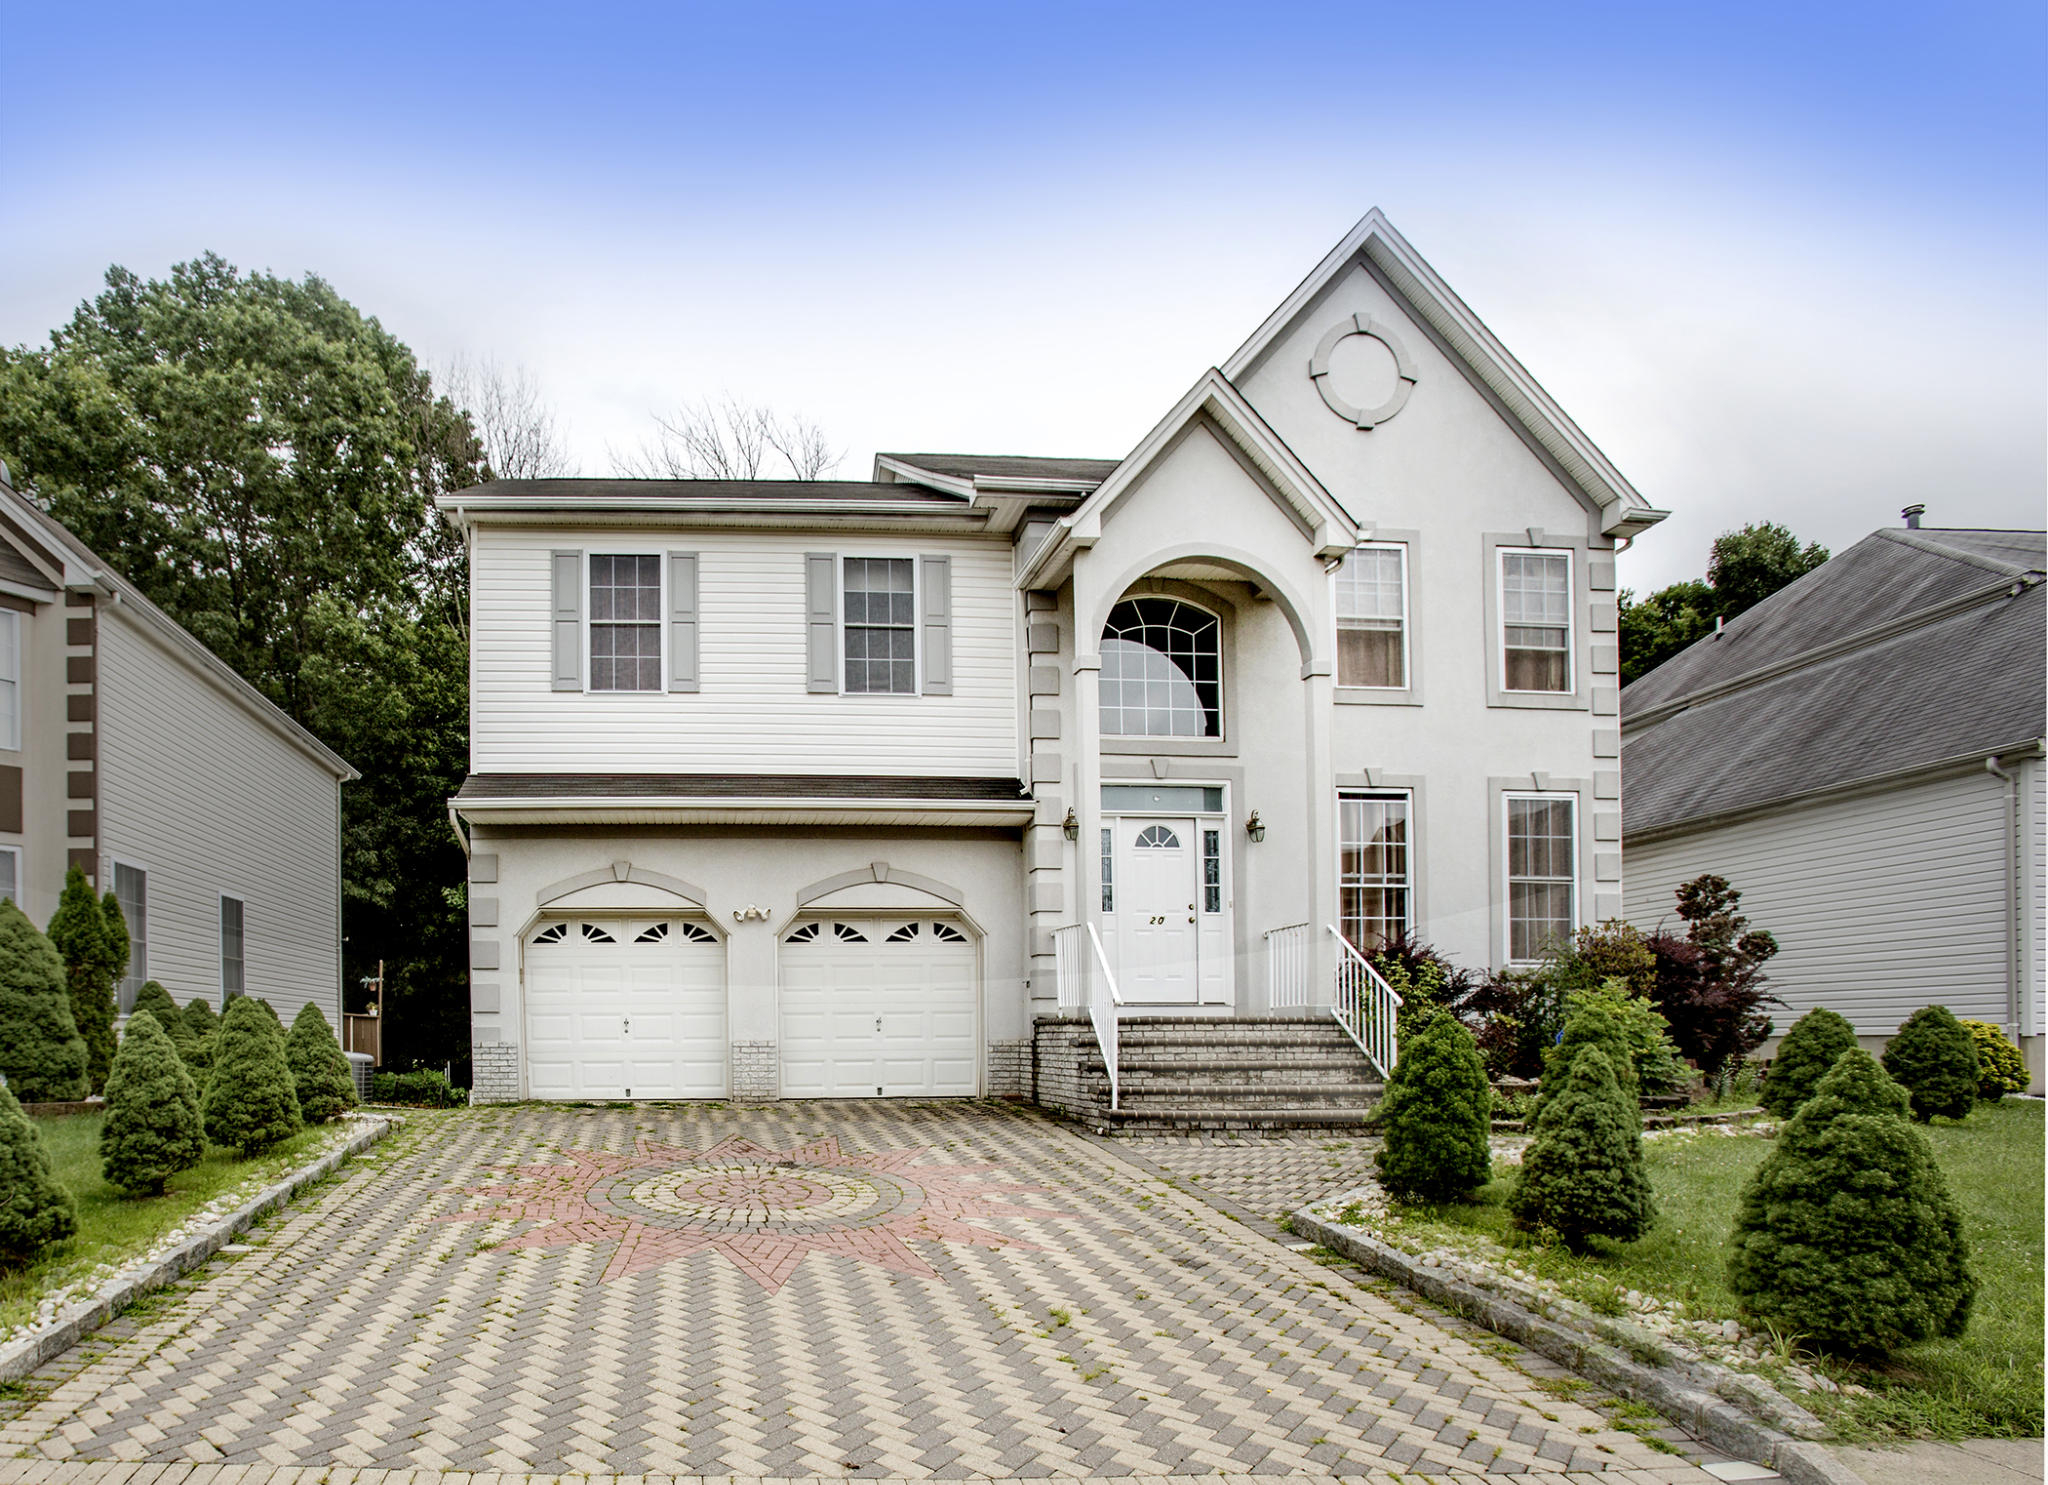 Dorable Homes For Sale In Wood Ridge Nj Collection - Home Decorating ...